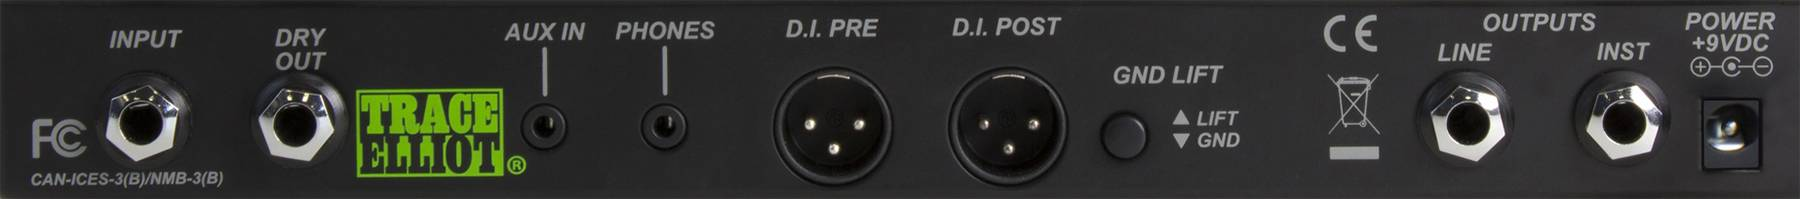 Trace Elliot Transit B Bass Preamp Pedal 03615880 Product Image 3